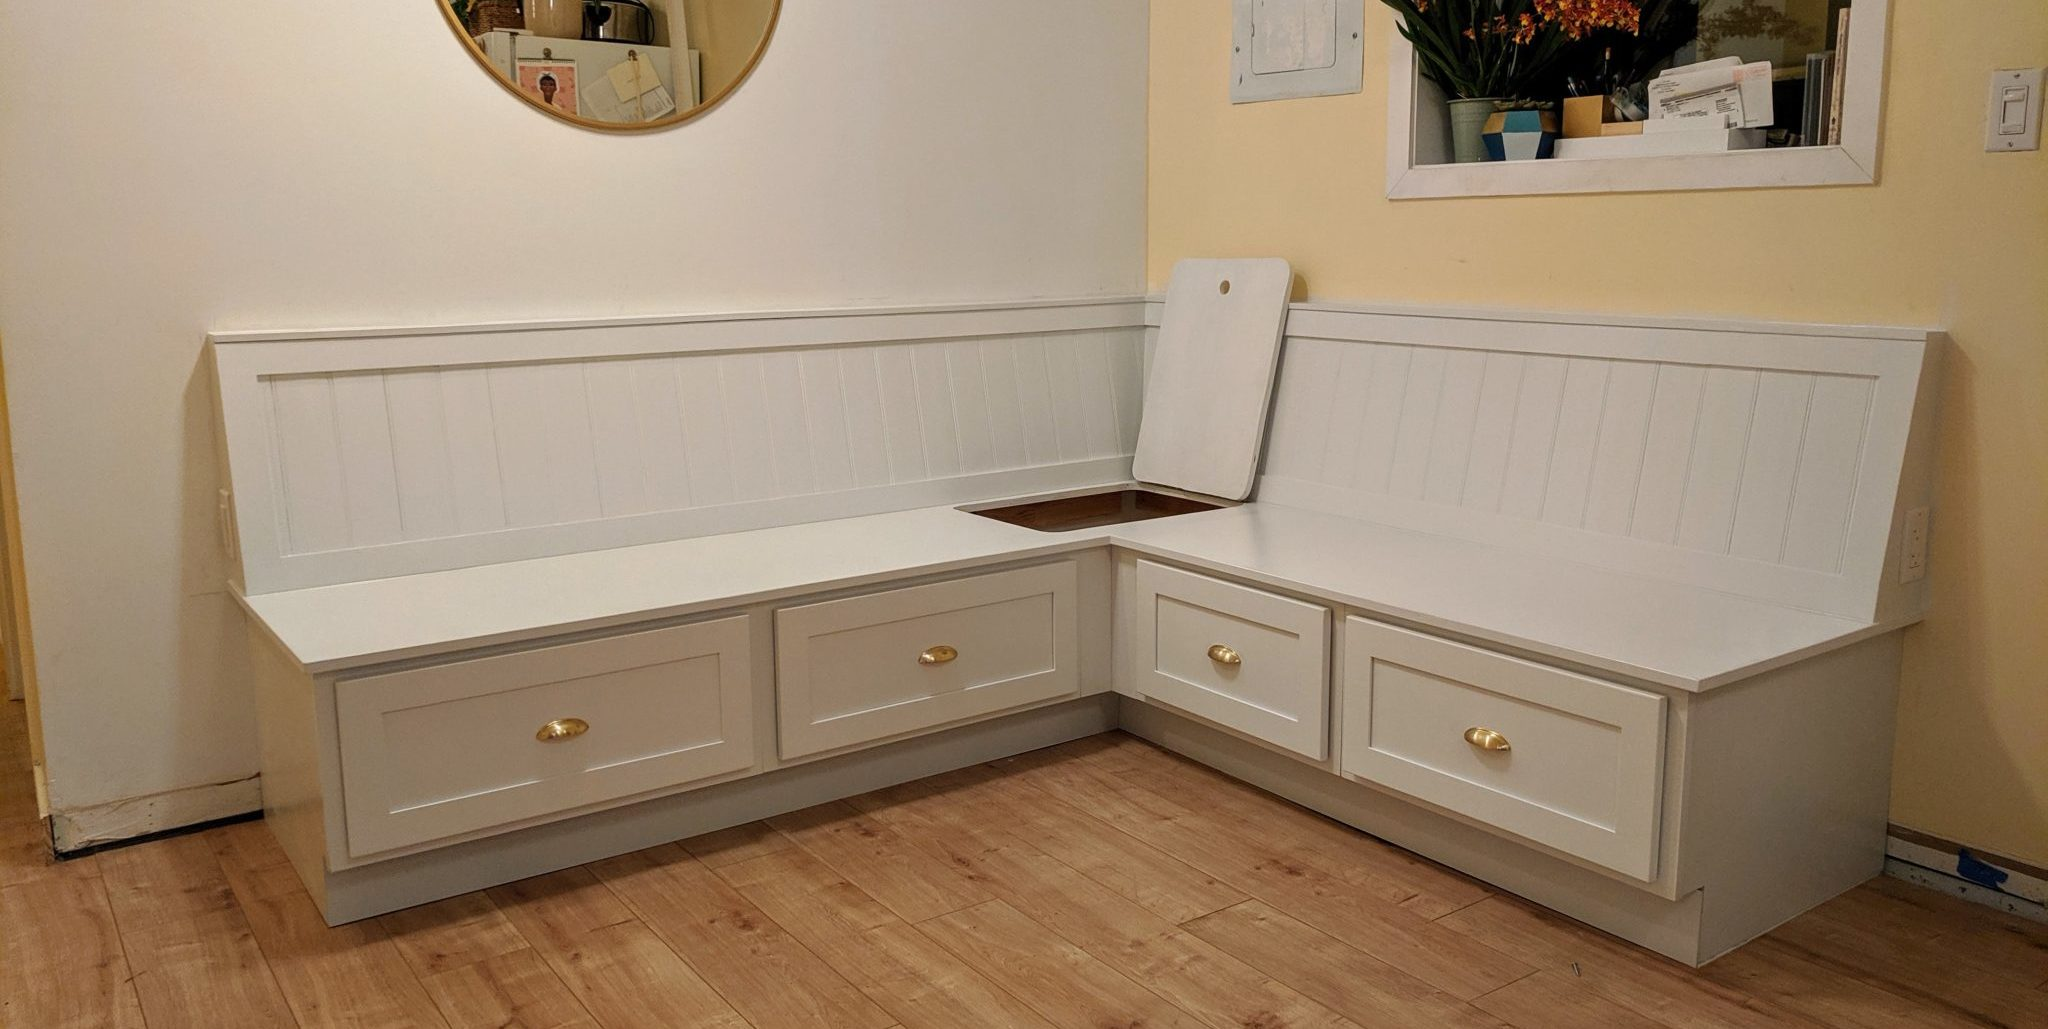 How To Build Banquette Bench Seating Mickey Kay